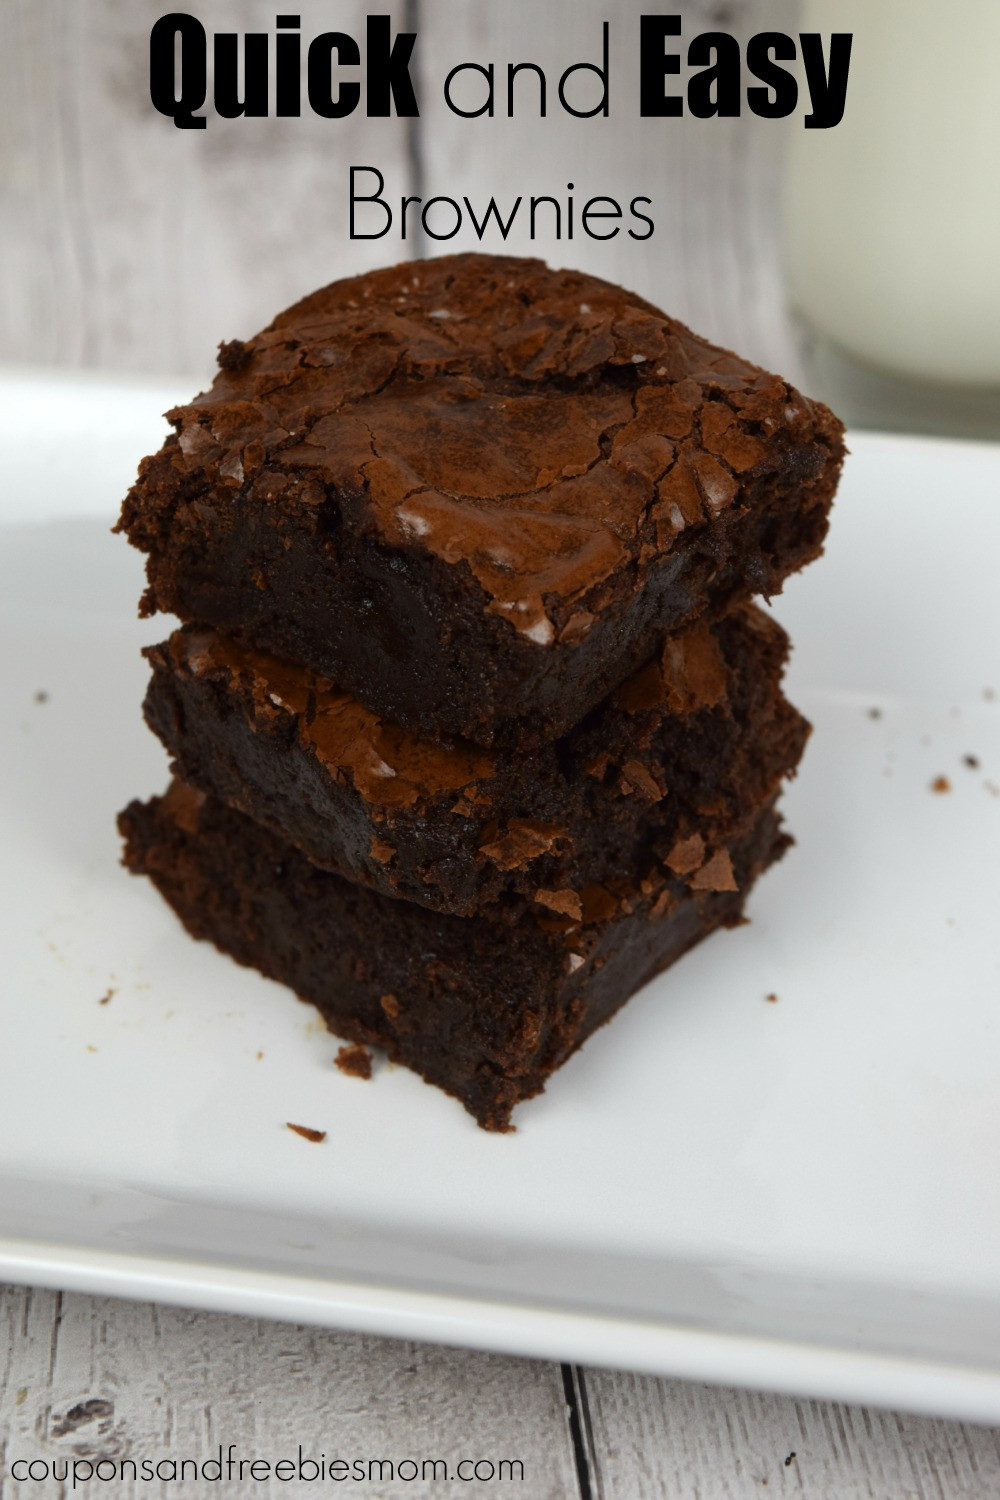 Homemade Chocolate Brownies  Quick and Easy Brownies Best Basic Recipe from Scratch